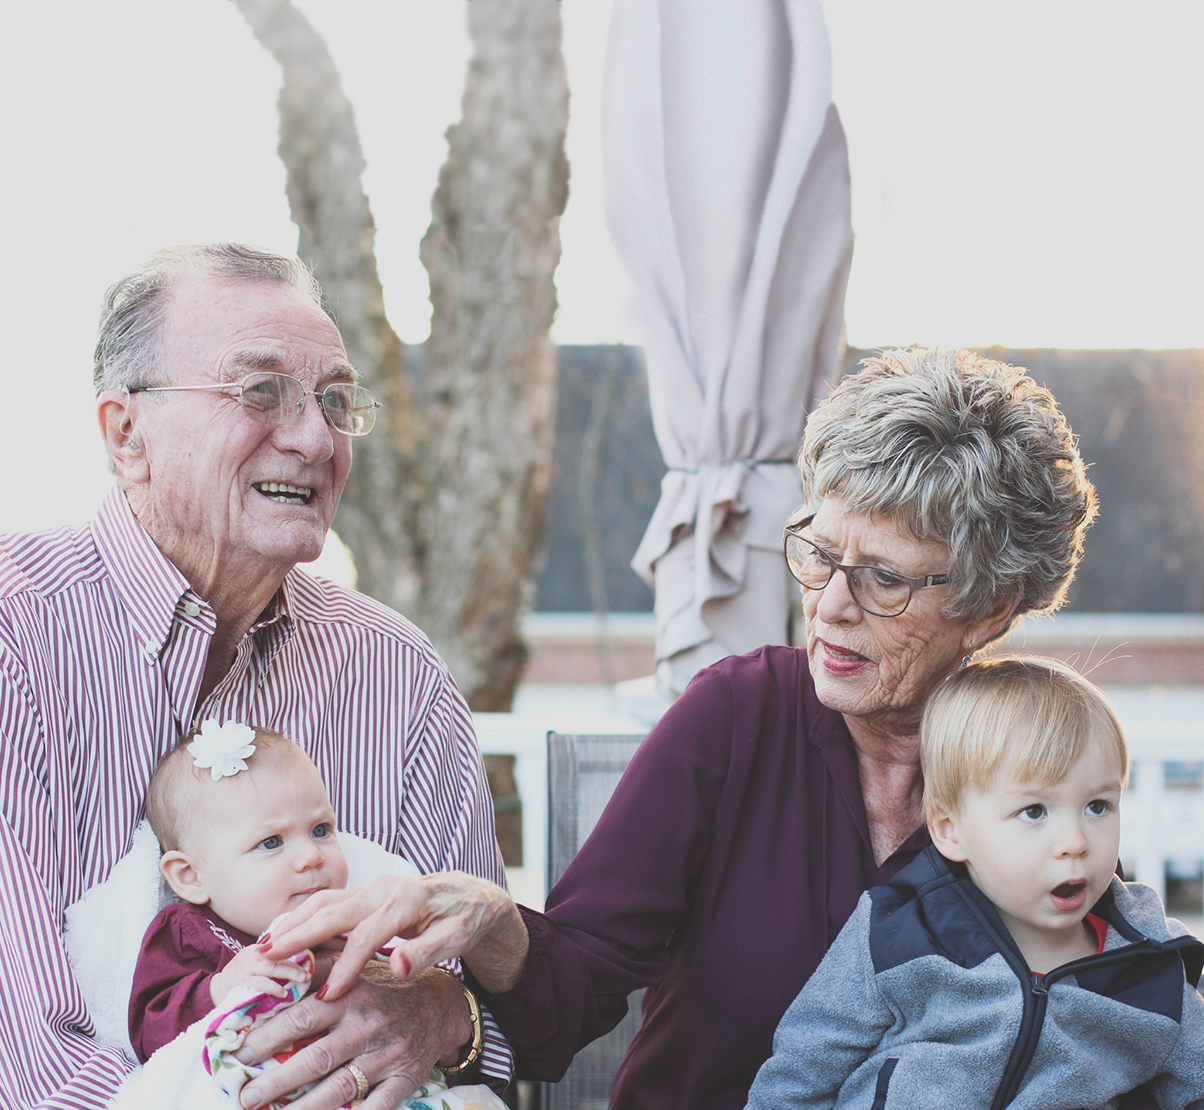 Grandparents smiling happily with their granddaughter and grandson